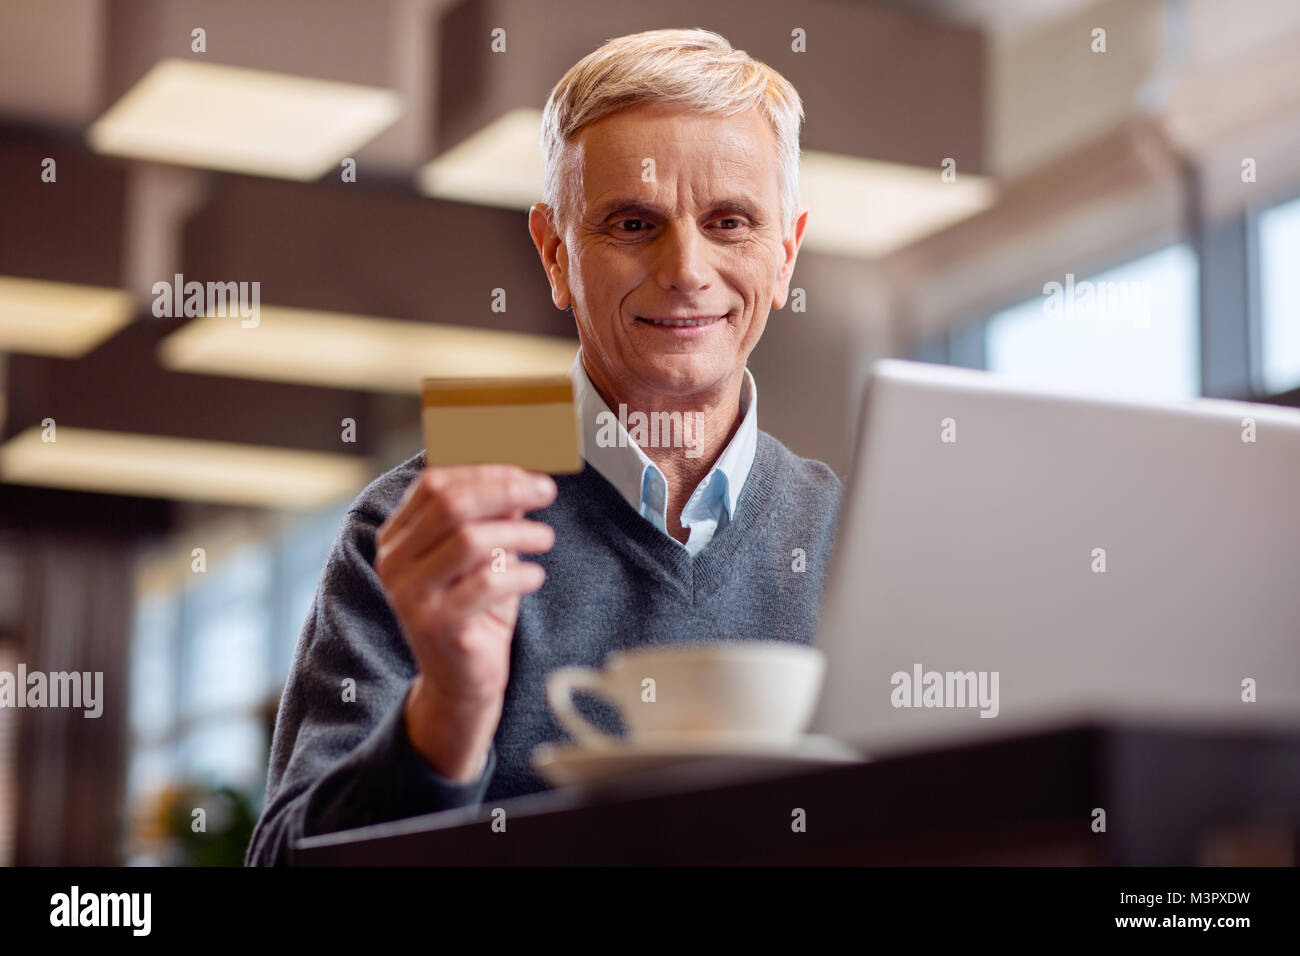 Energetic mature man paying with card - Stock Image